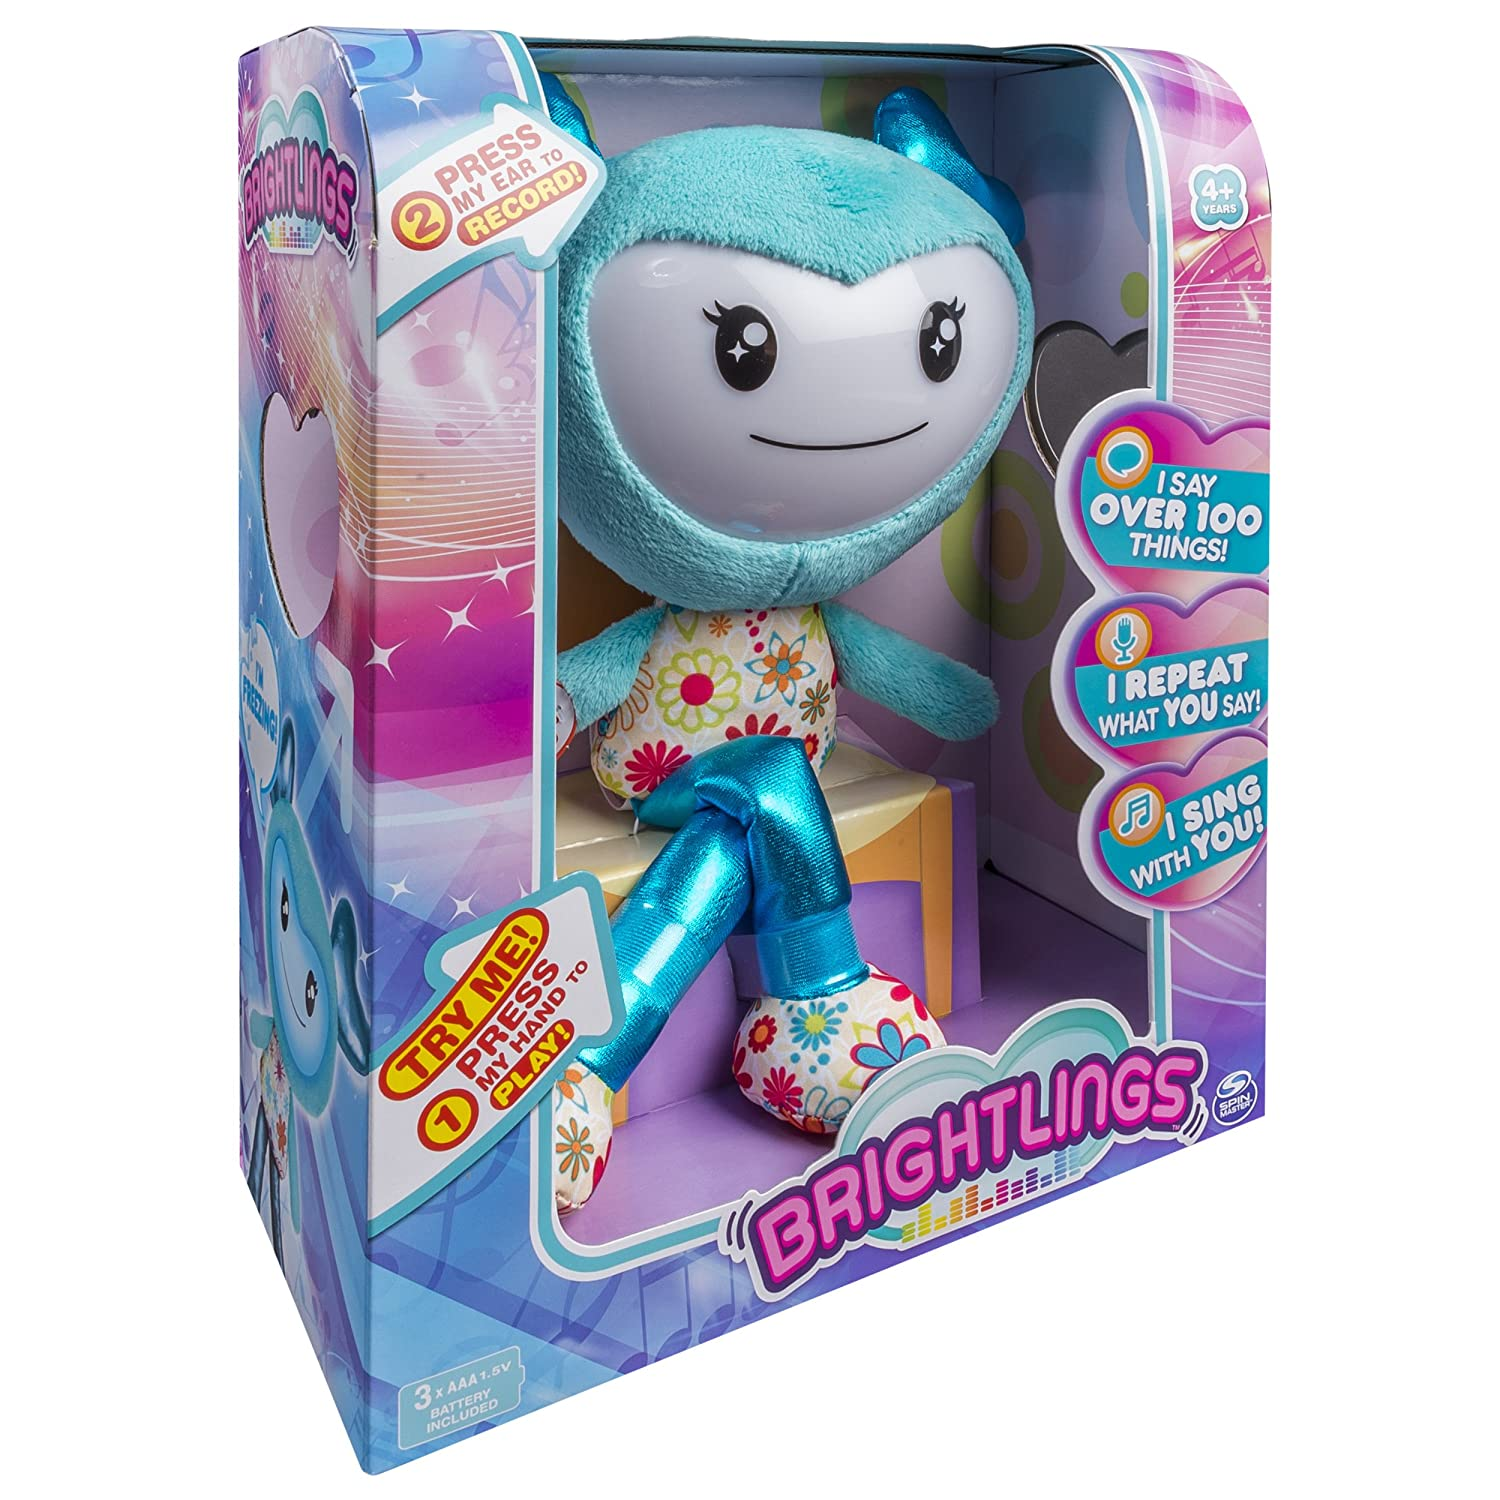 "Brightlings, Interactive Singing, Talking 15"" Plush - $9.78 (Reg. $29.99)"